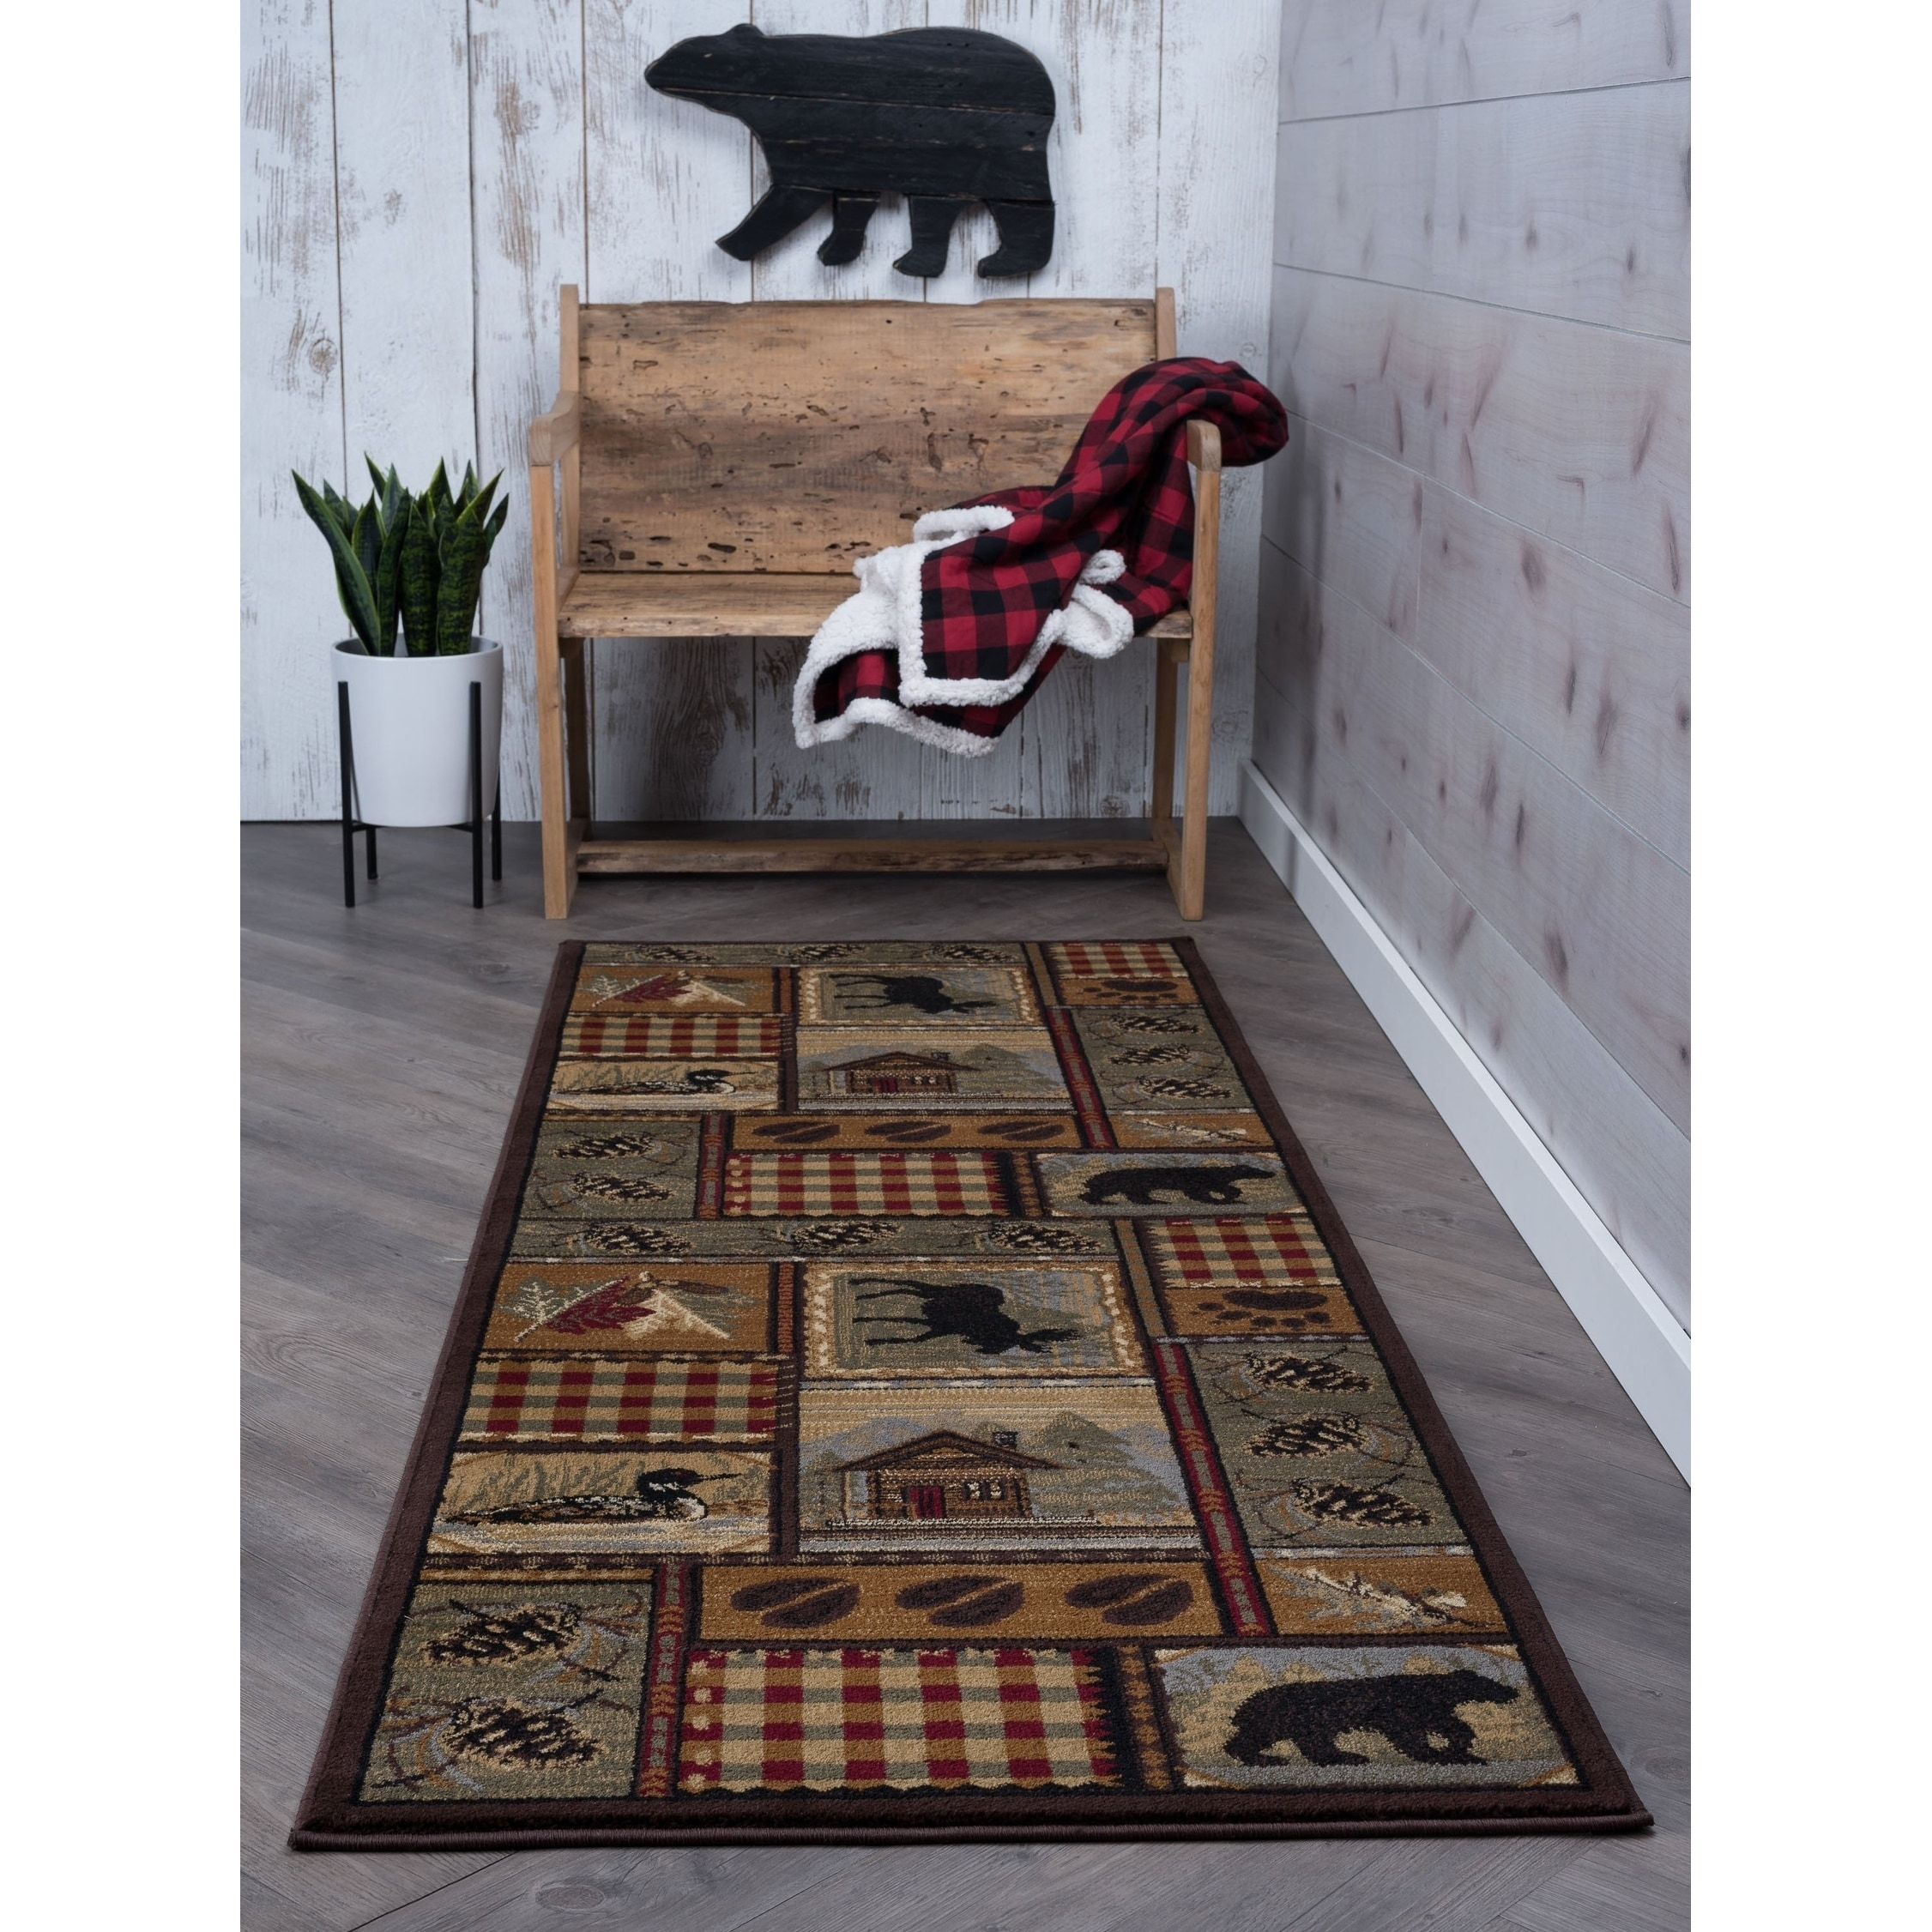 Details About Area Rug Runner Bear Pine Cone Cabin Lodge Living Room Decor Carpet 2 7x7 3 New